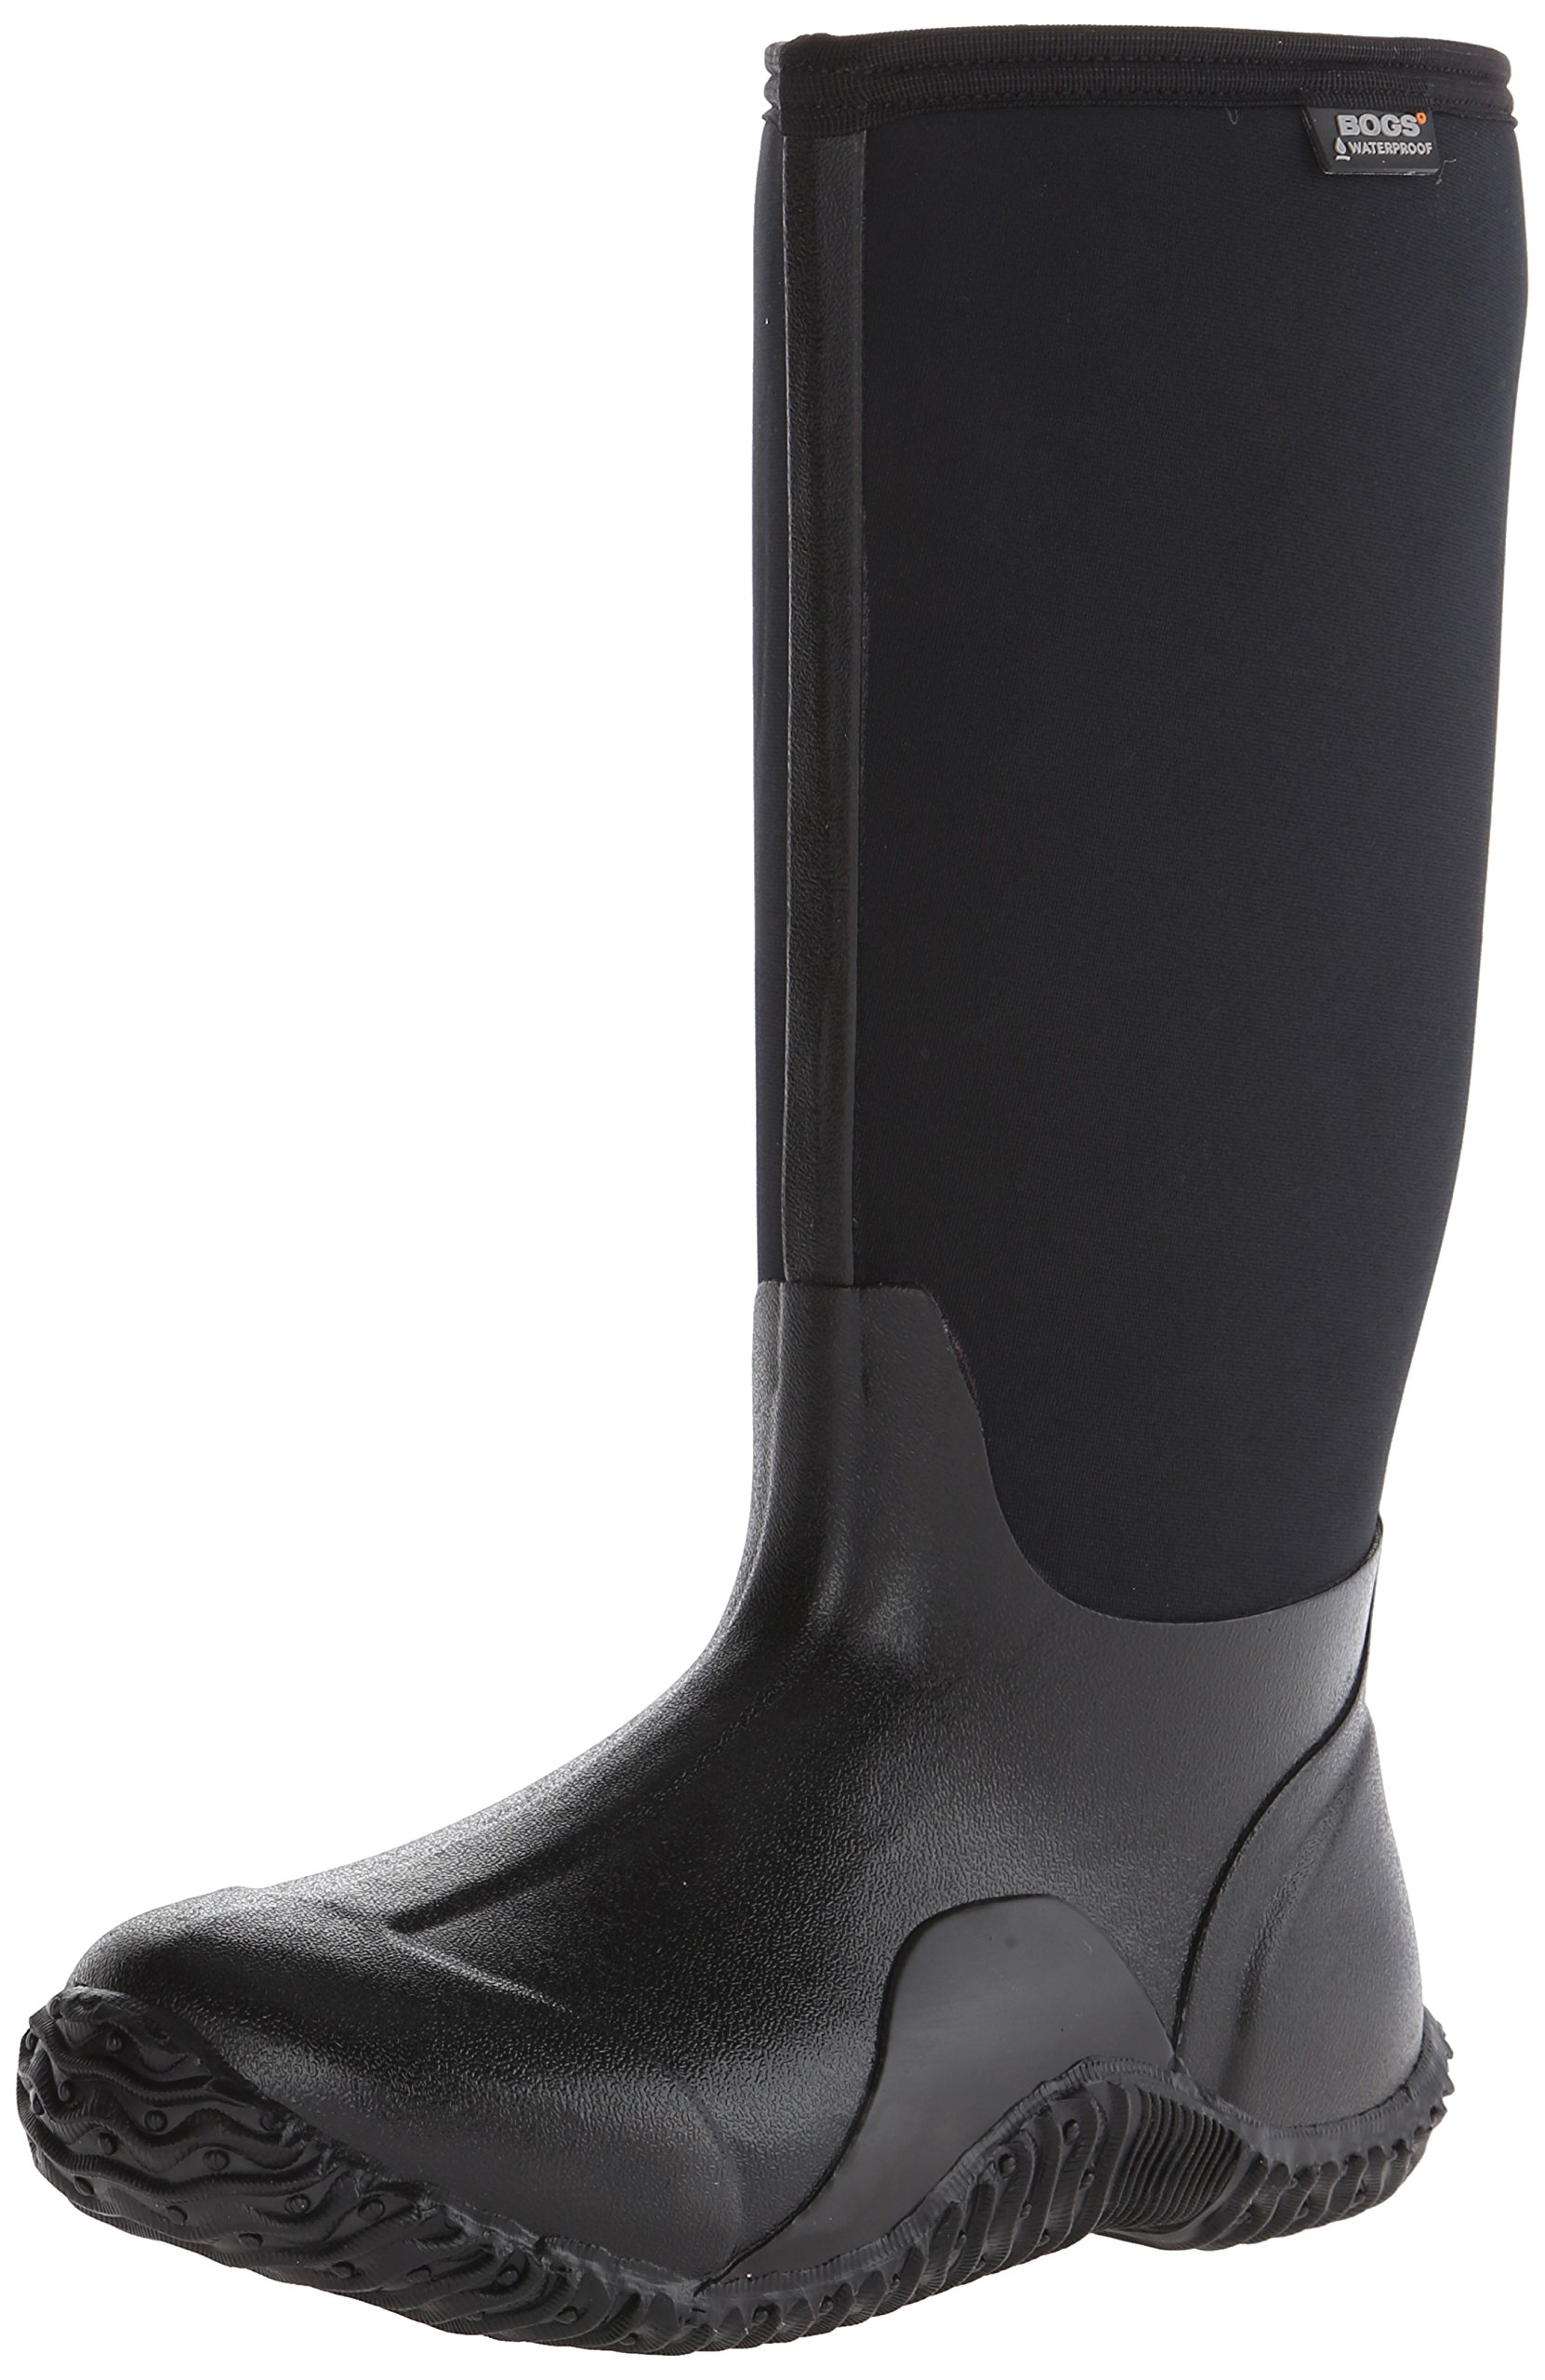 Bogs Women's Classic High Waterproof Insulated Boot, Black,8 M US